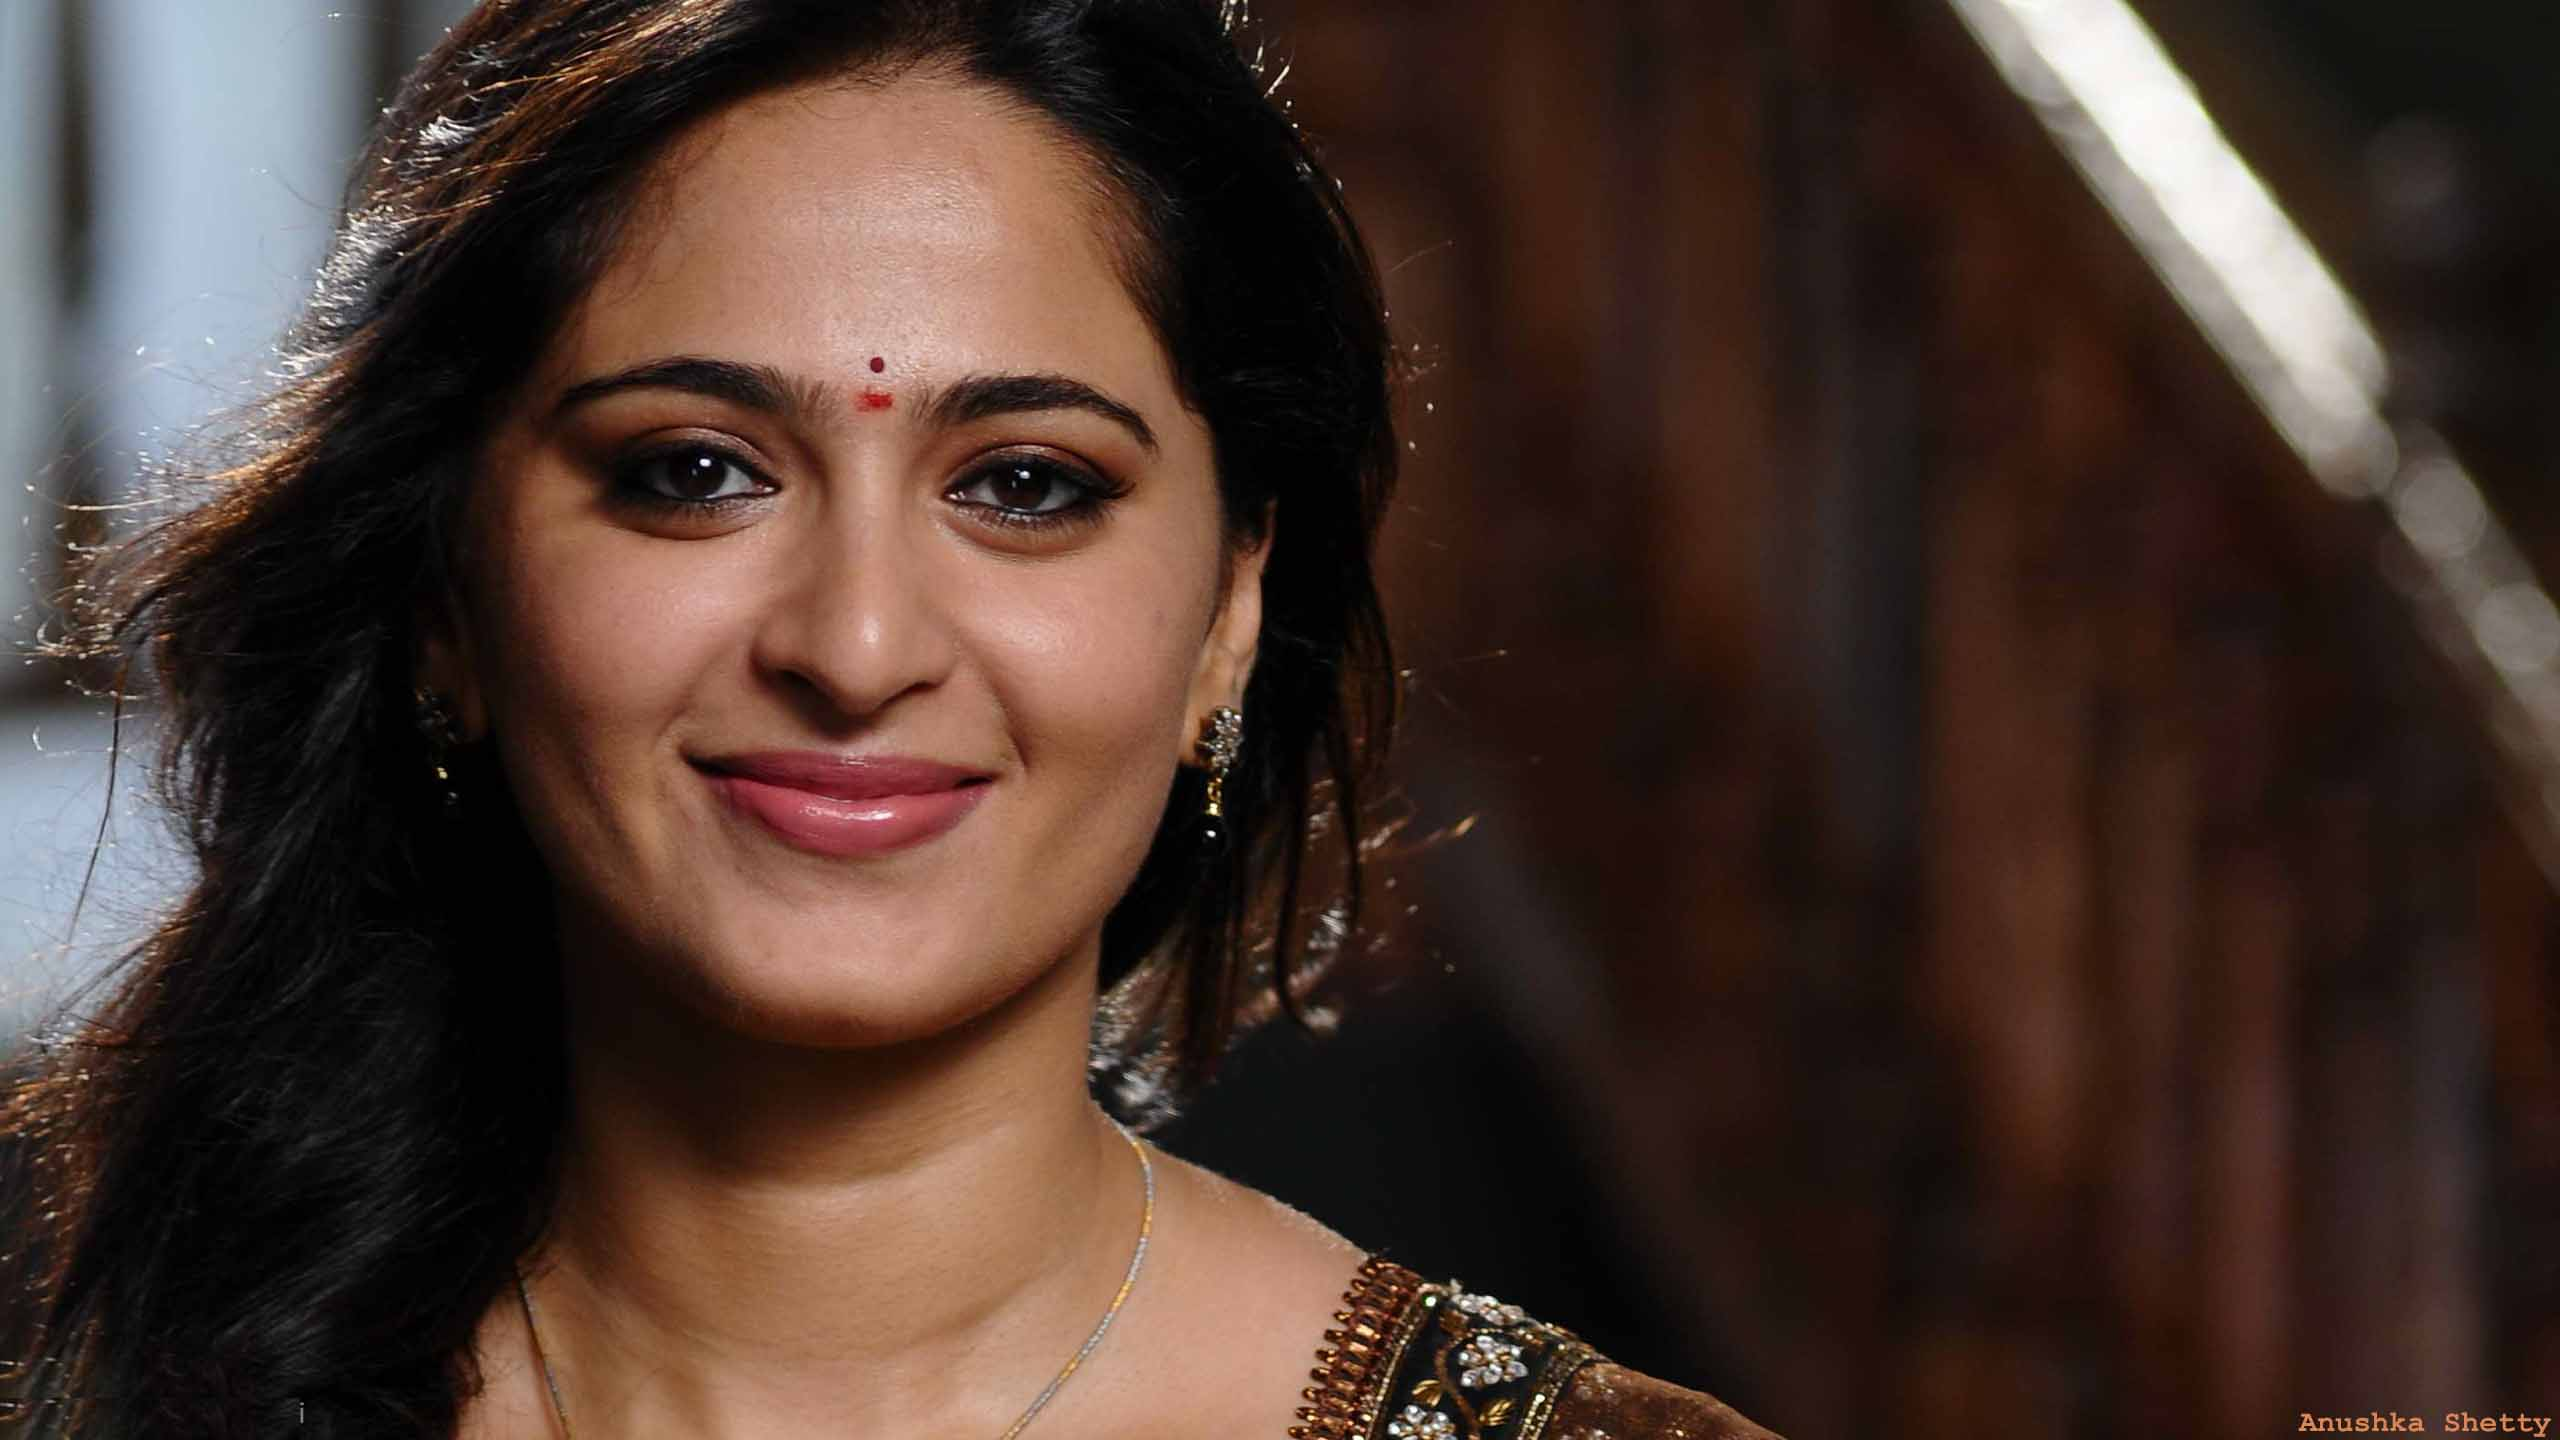 Best Anushka Setty HD wallpaper for download